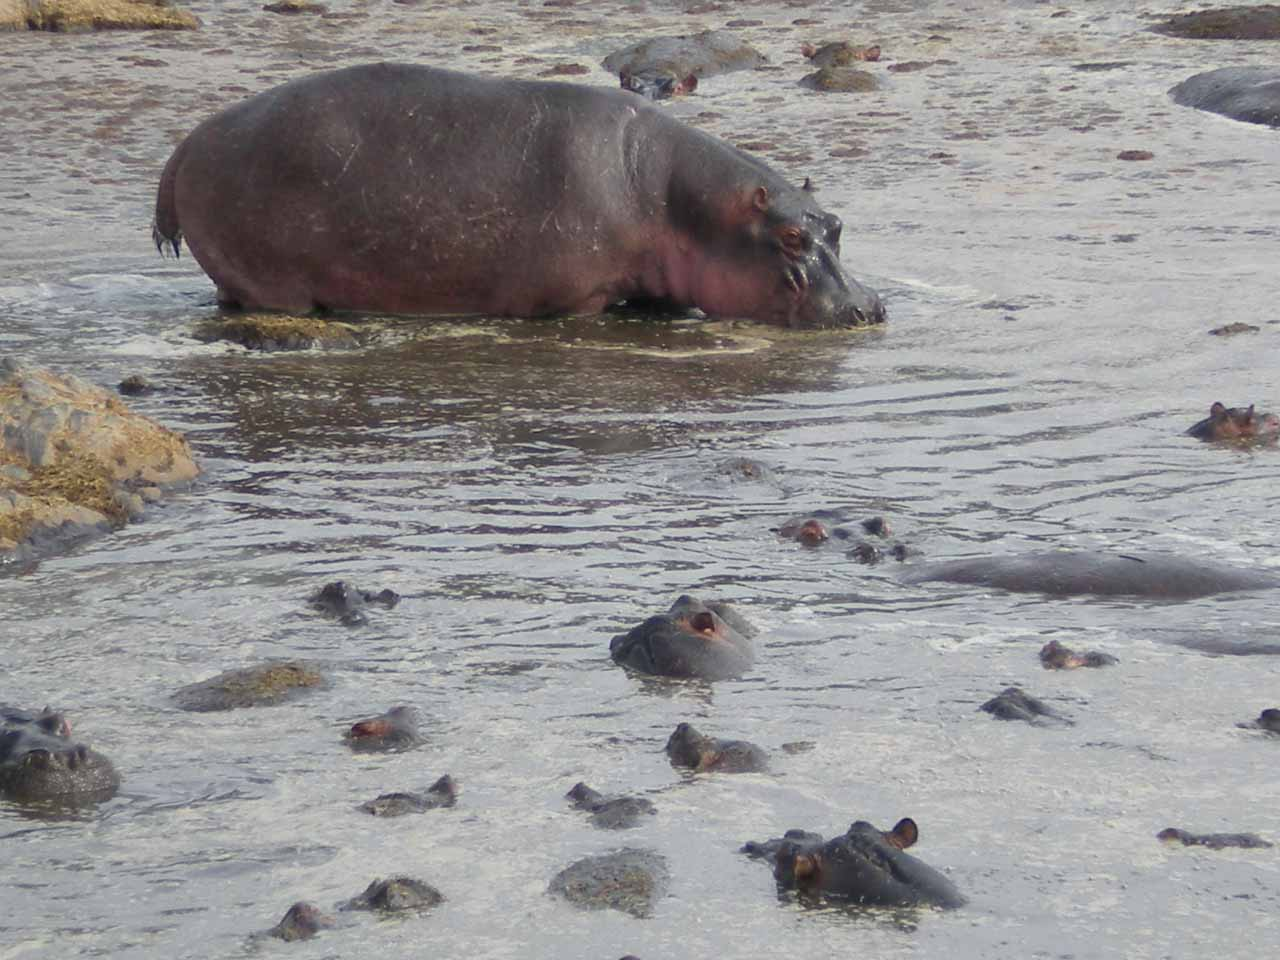 One of many hippo pools